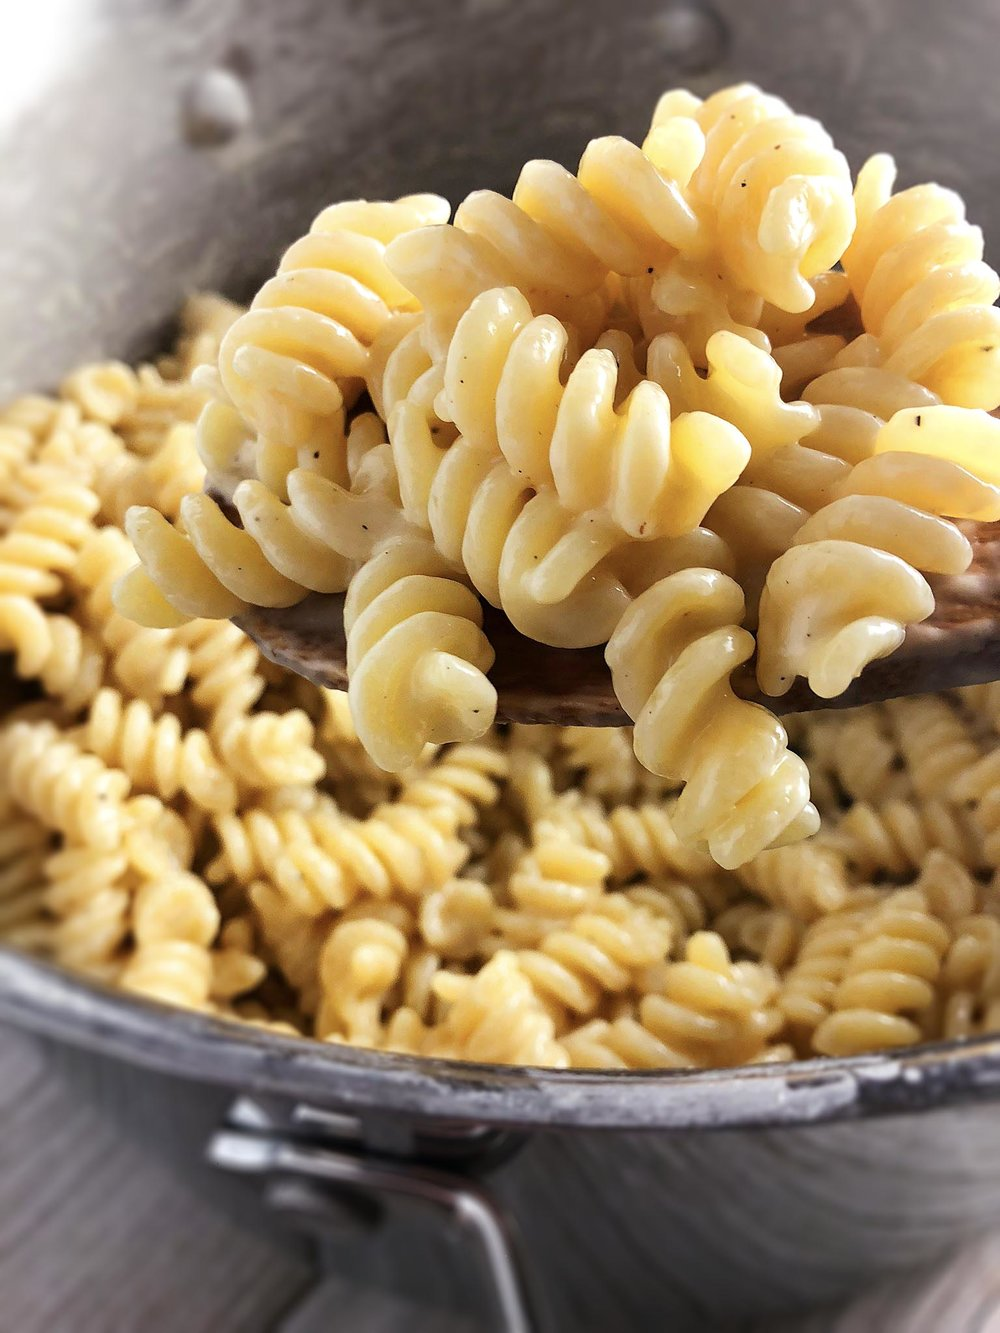 cheesy_fusilli_with_tomatoes_sausage47.jpg